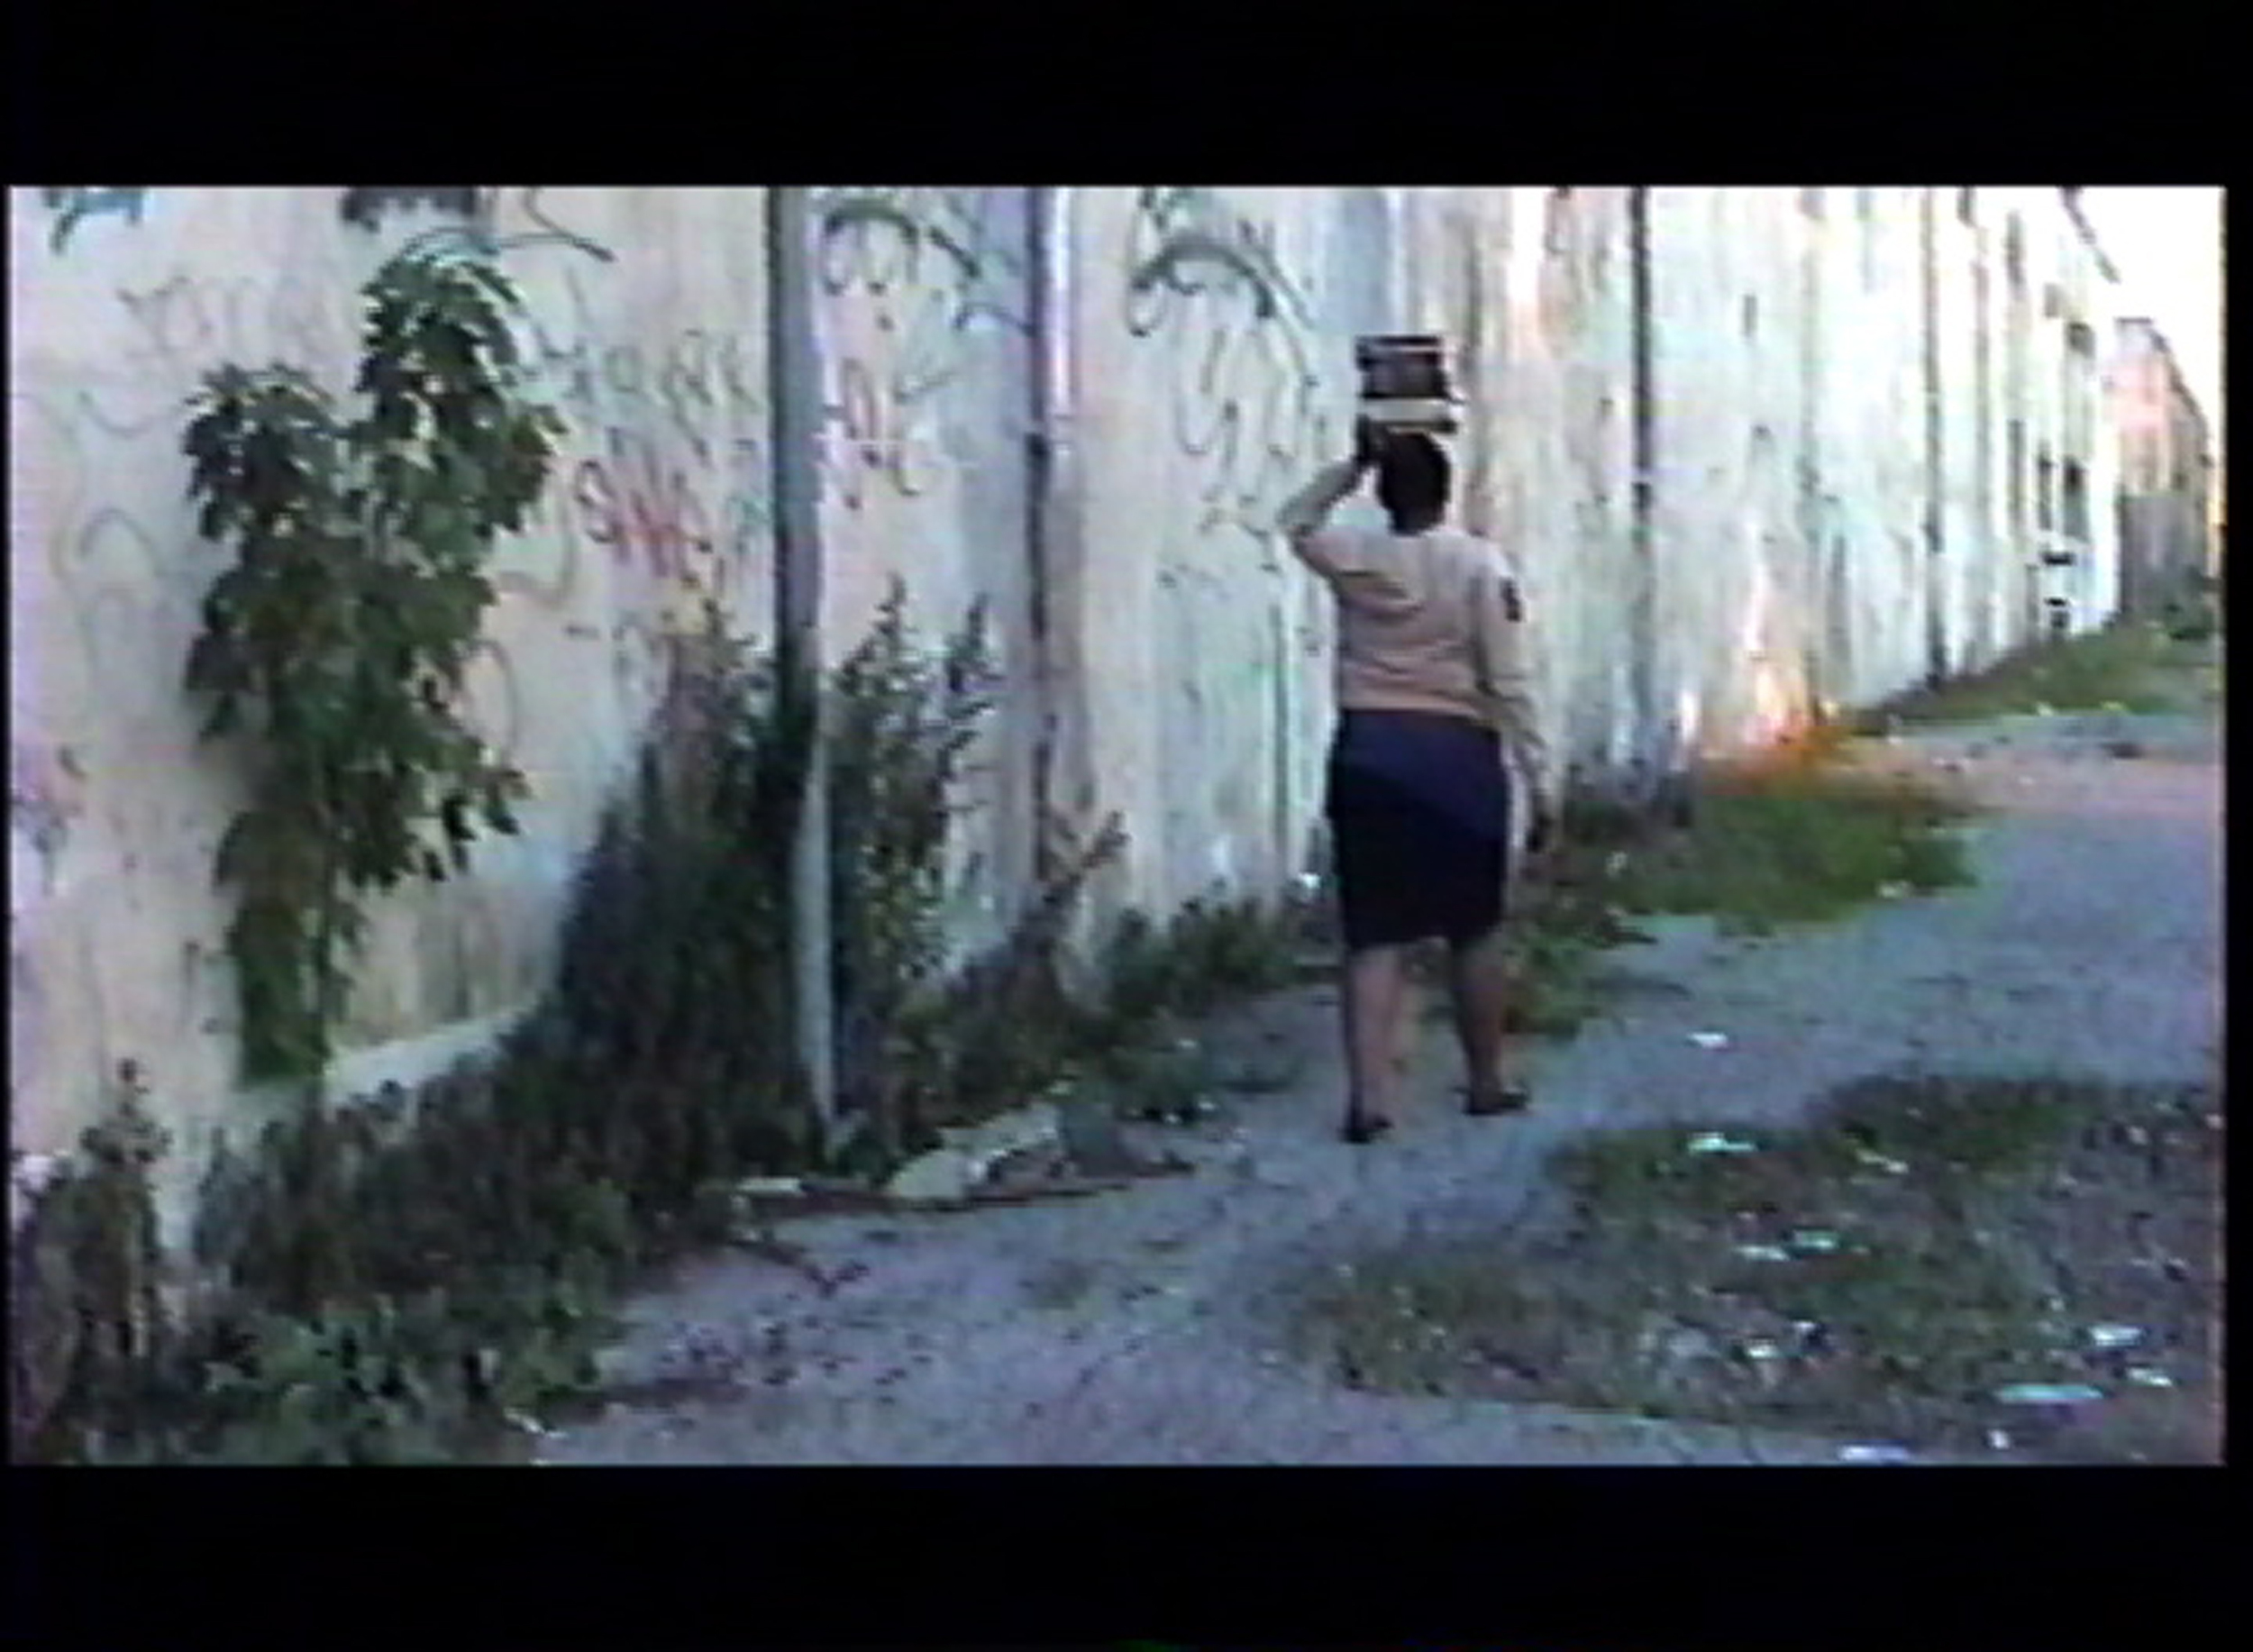 06.Untitled(footage).JPEG